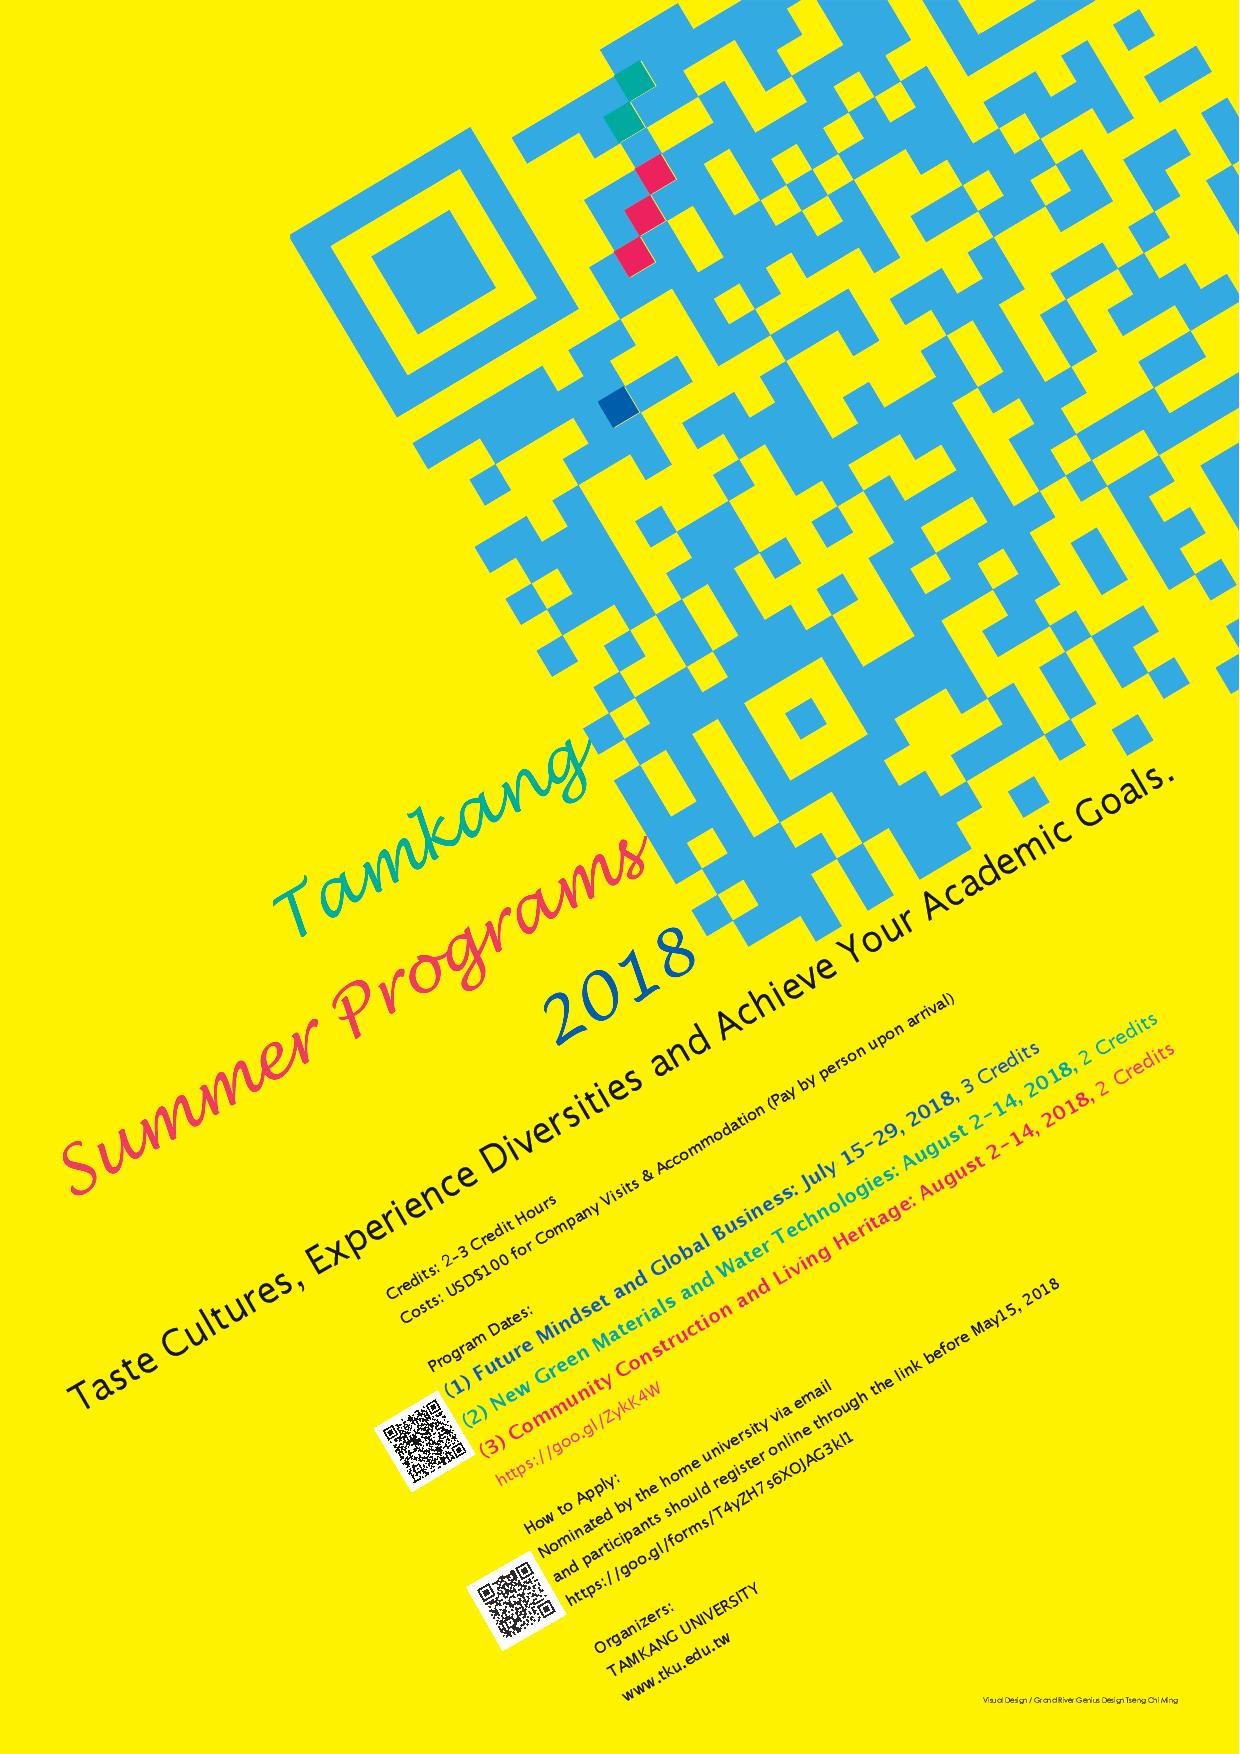 Tamkang Summer Program 2018